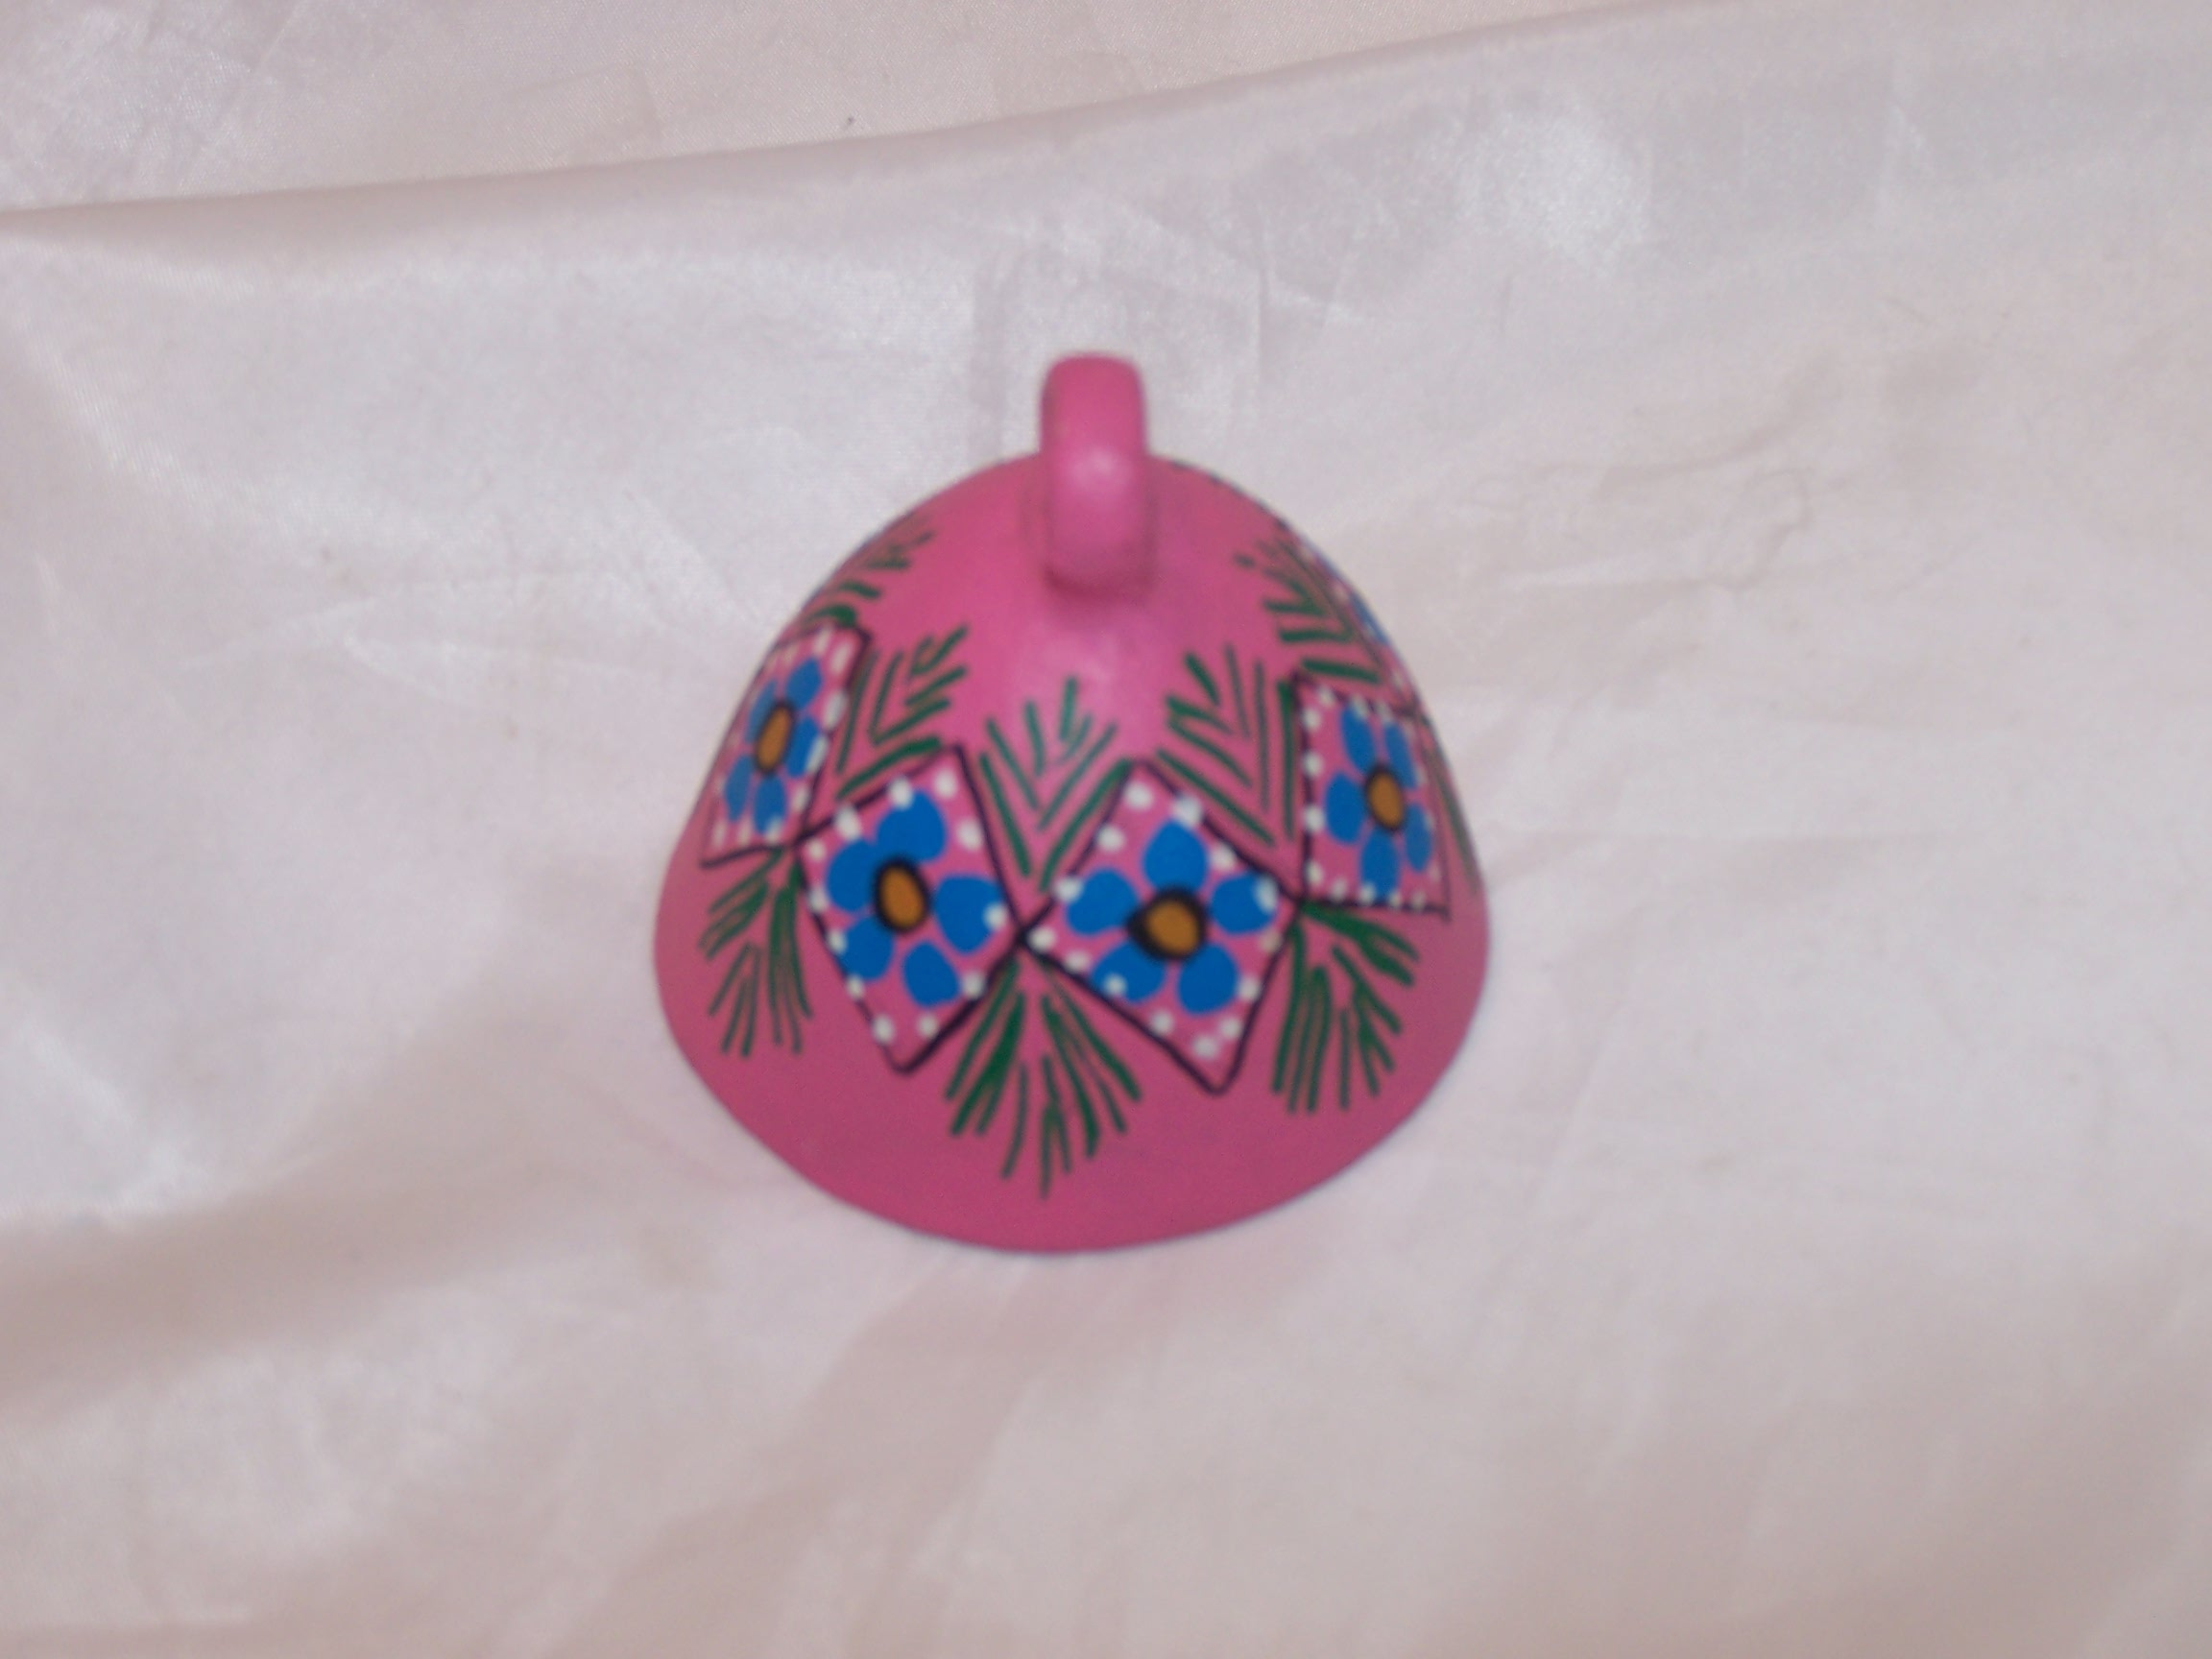 Image 3 of Floral Clay Bell, Oaxaca, Mexico, Hand Crafted, Painted